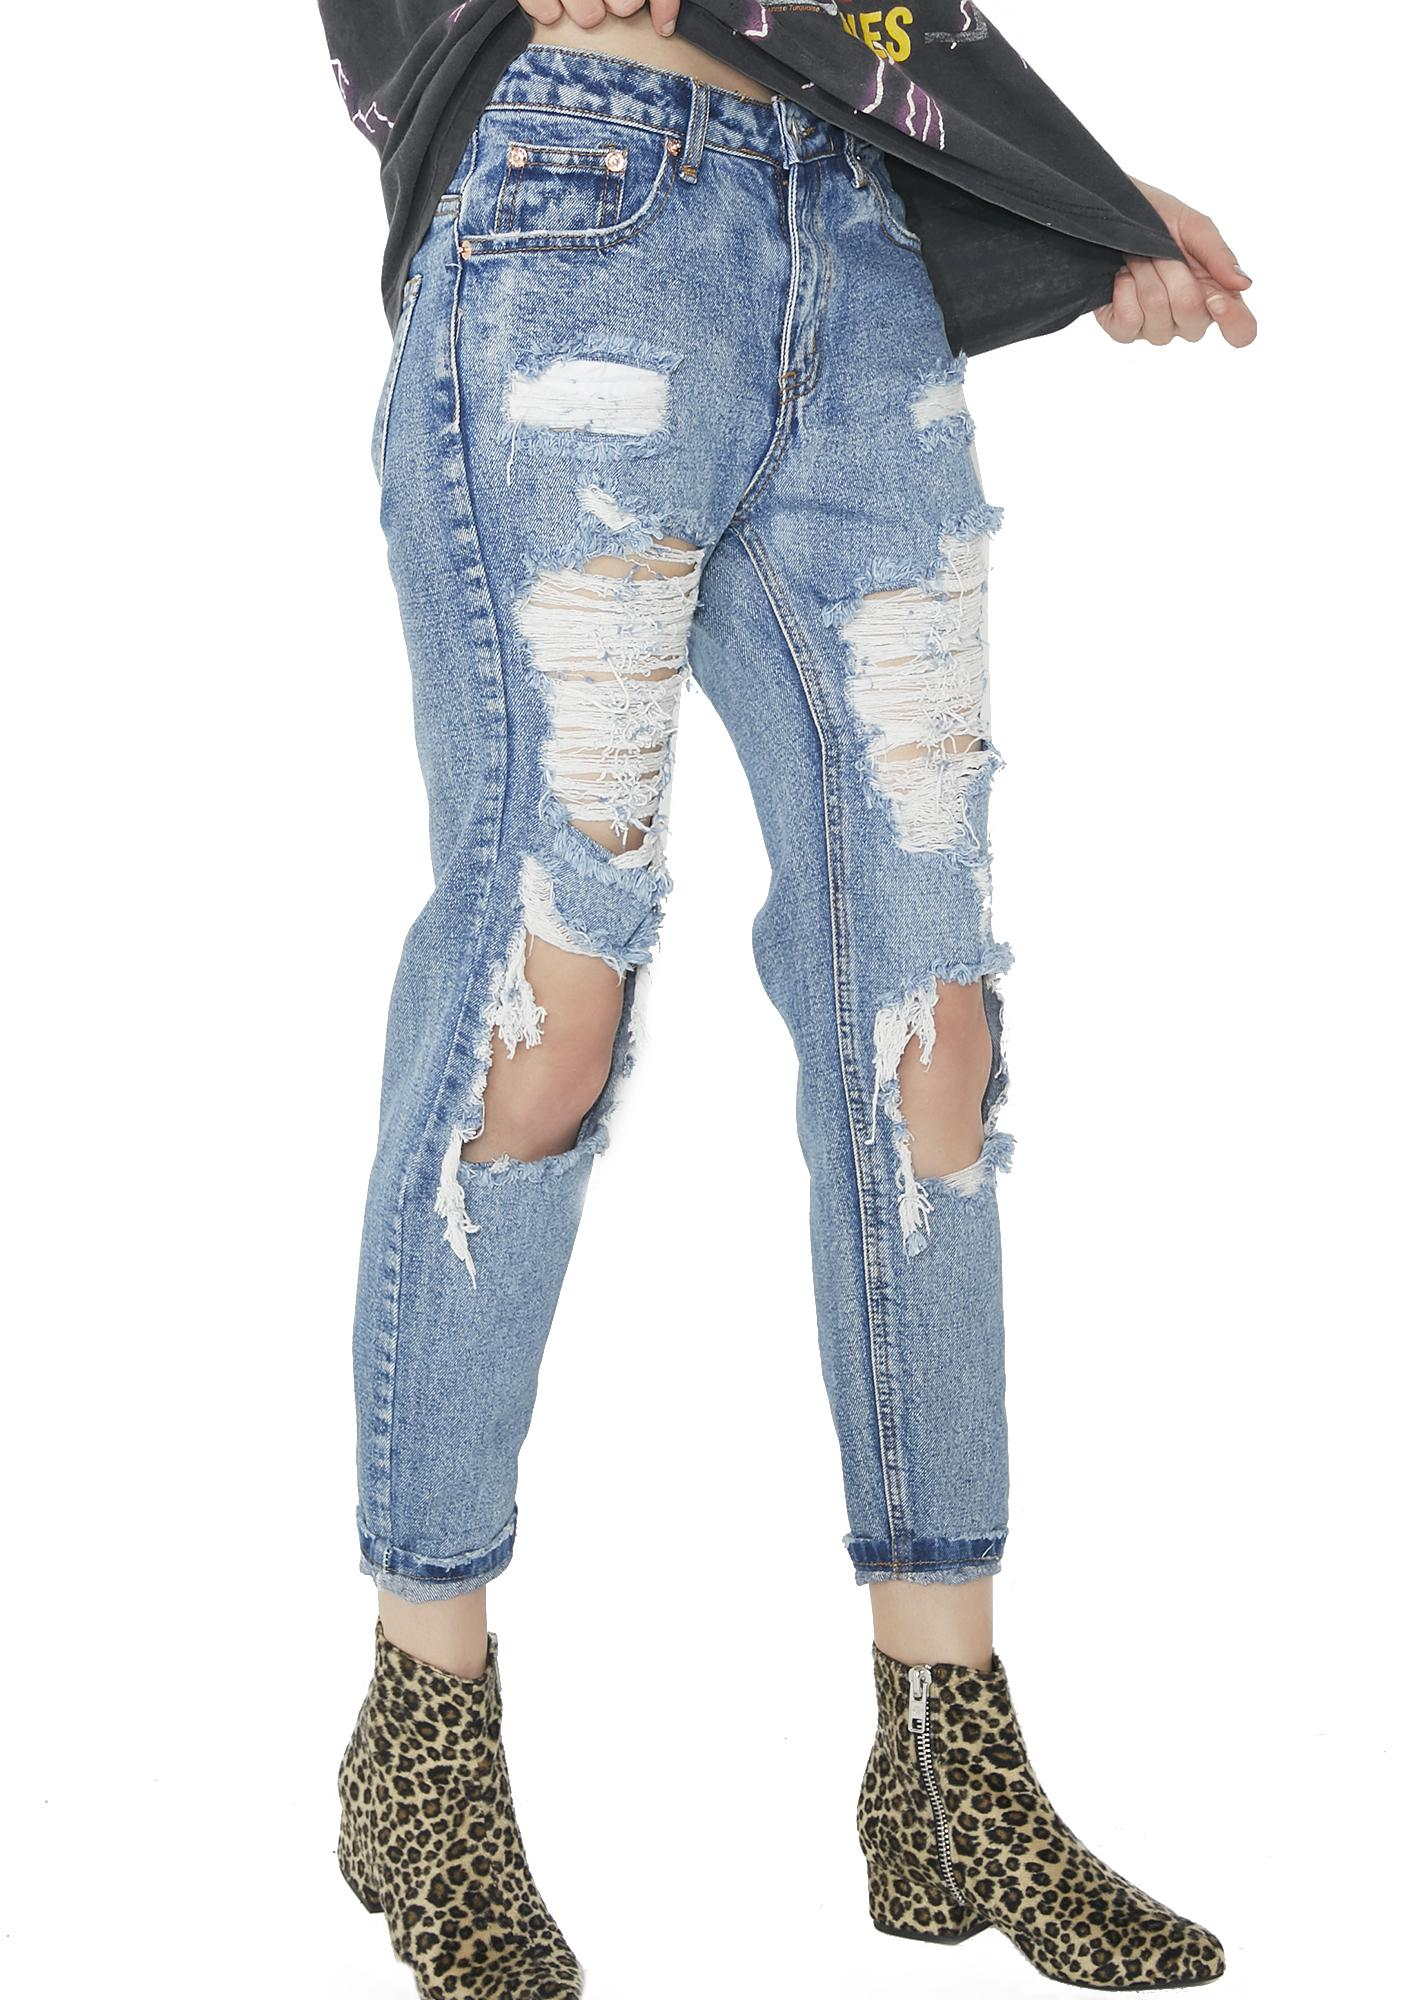 Above N' Beyond Distressed Jeans